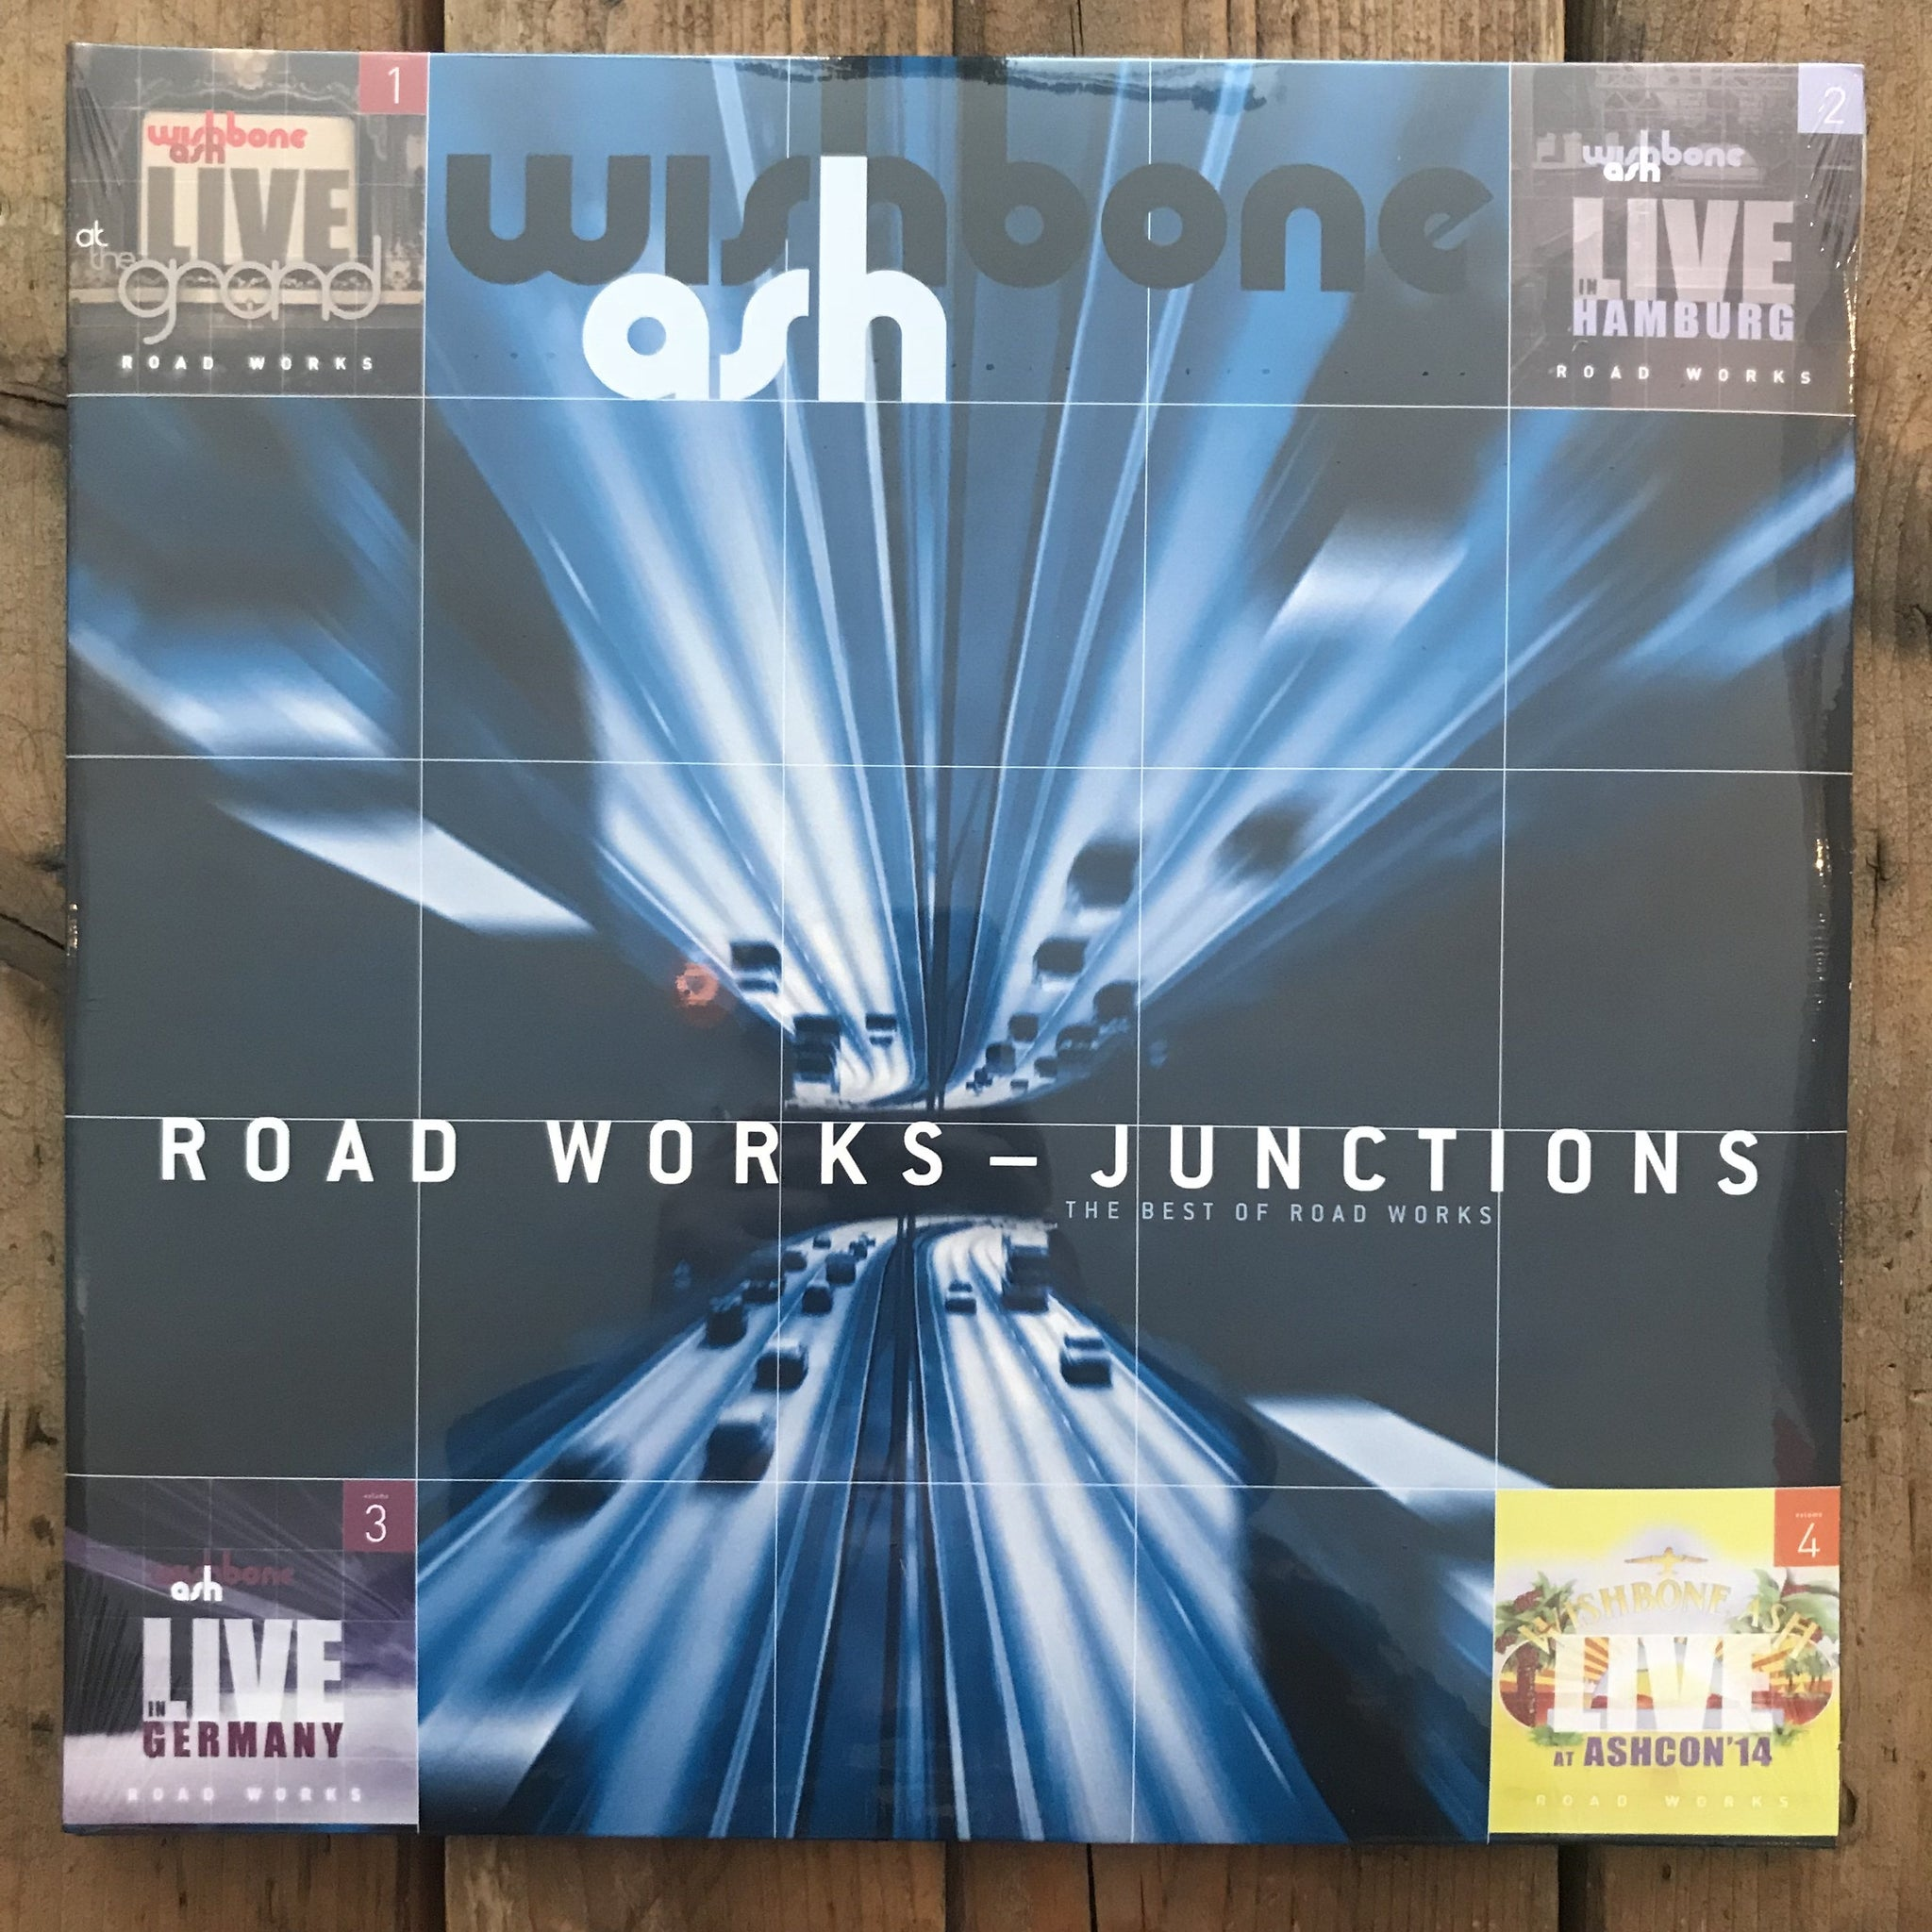 Wishbone Ash - Roadworks - Junctions (RSD)